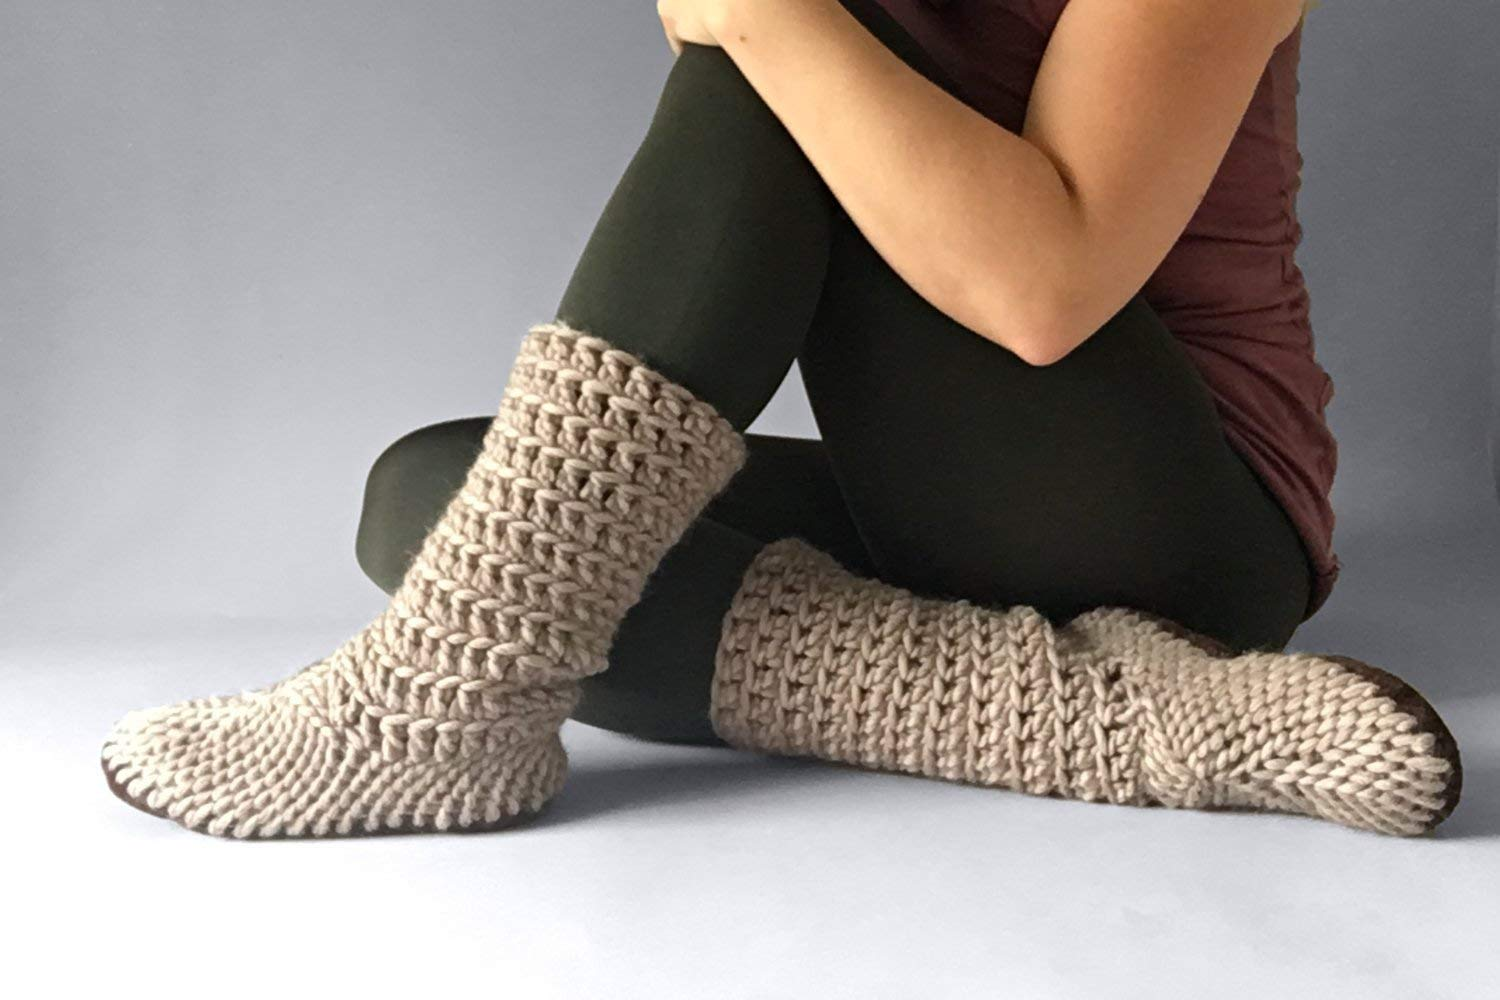 Muffle Boot Fawn - House Shoe for Women, Eco Wool Shoes, Custom Made Booties, Cute Slippers Women, Crochet Shoes, Eco Friendly Slippers